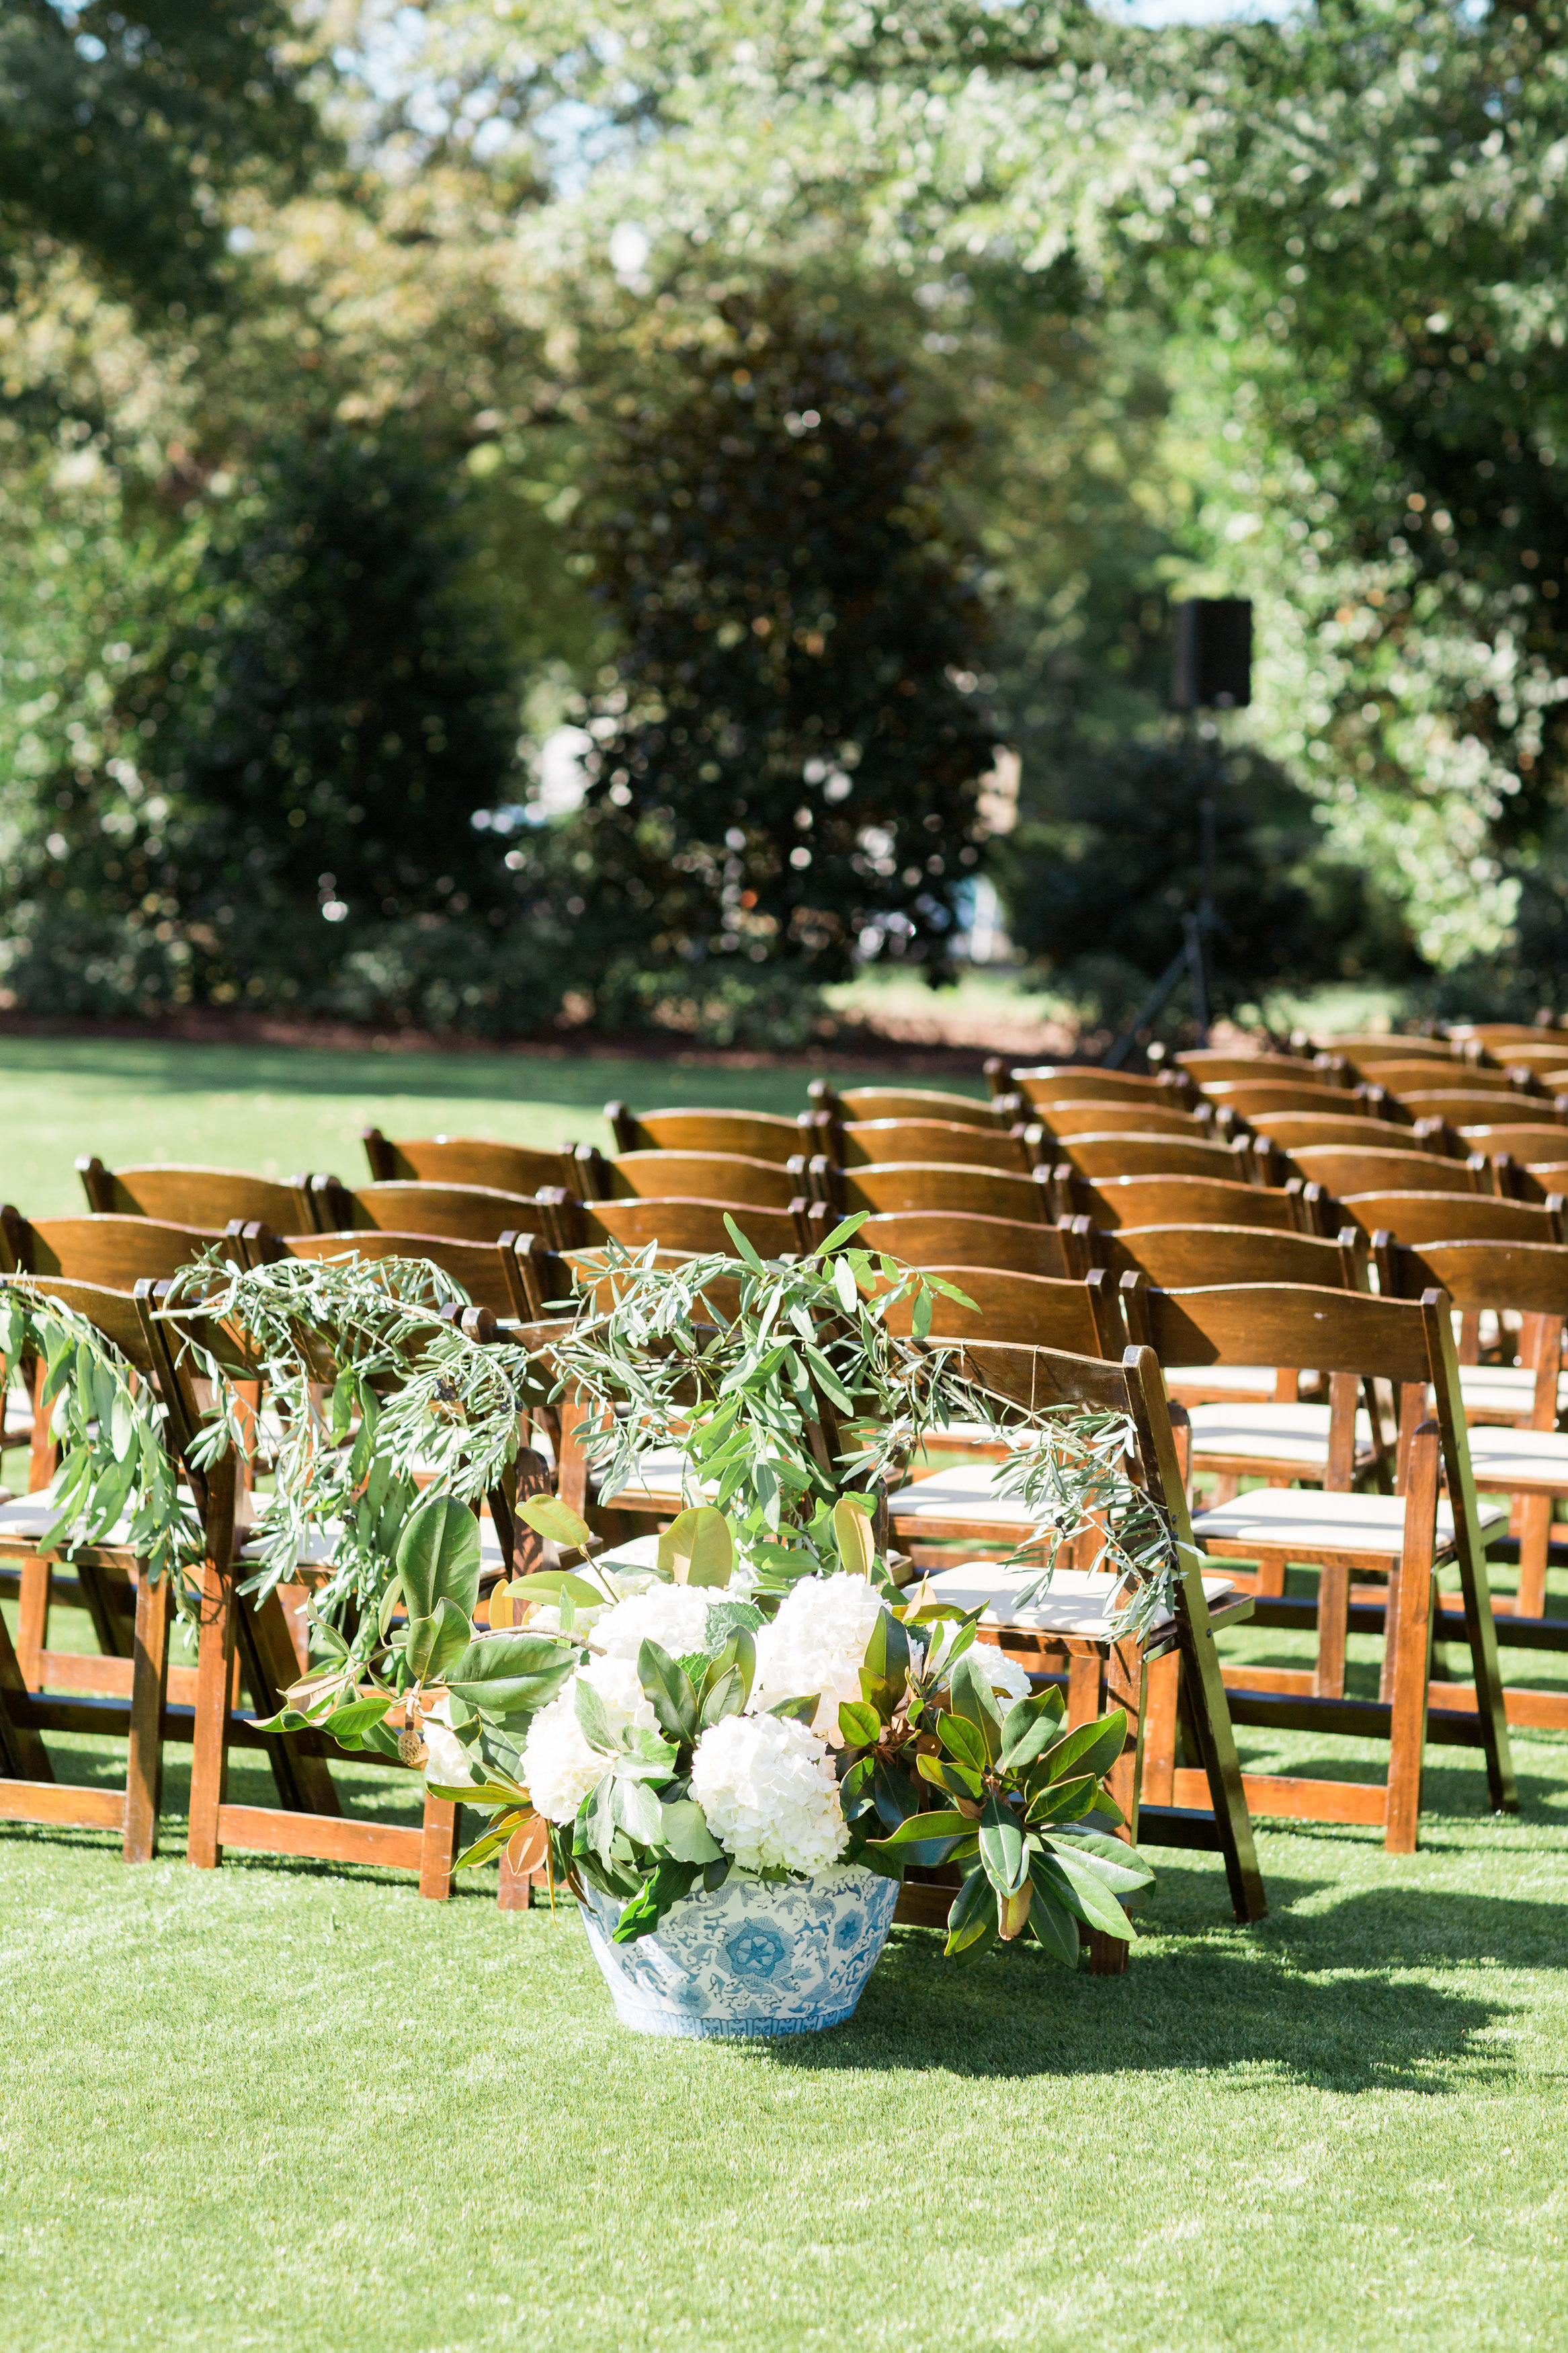 Ginger Jars incorporated into outdoor ceremony at Merrimon Wynne, Melissa Delorme